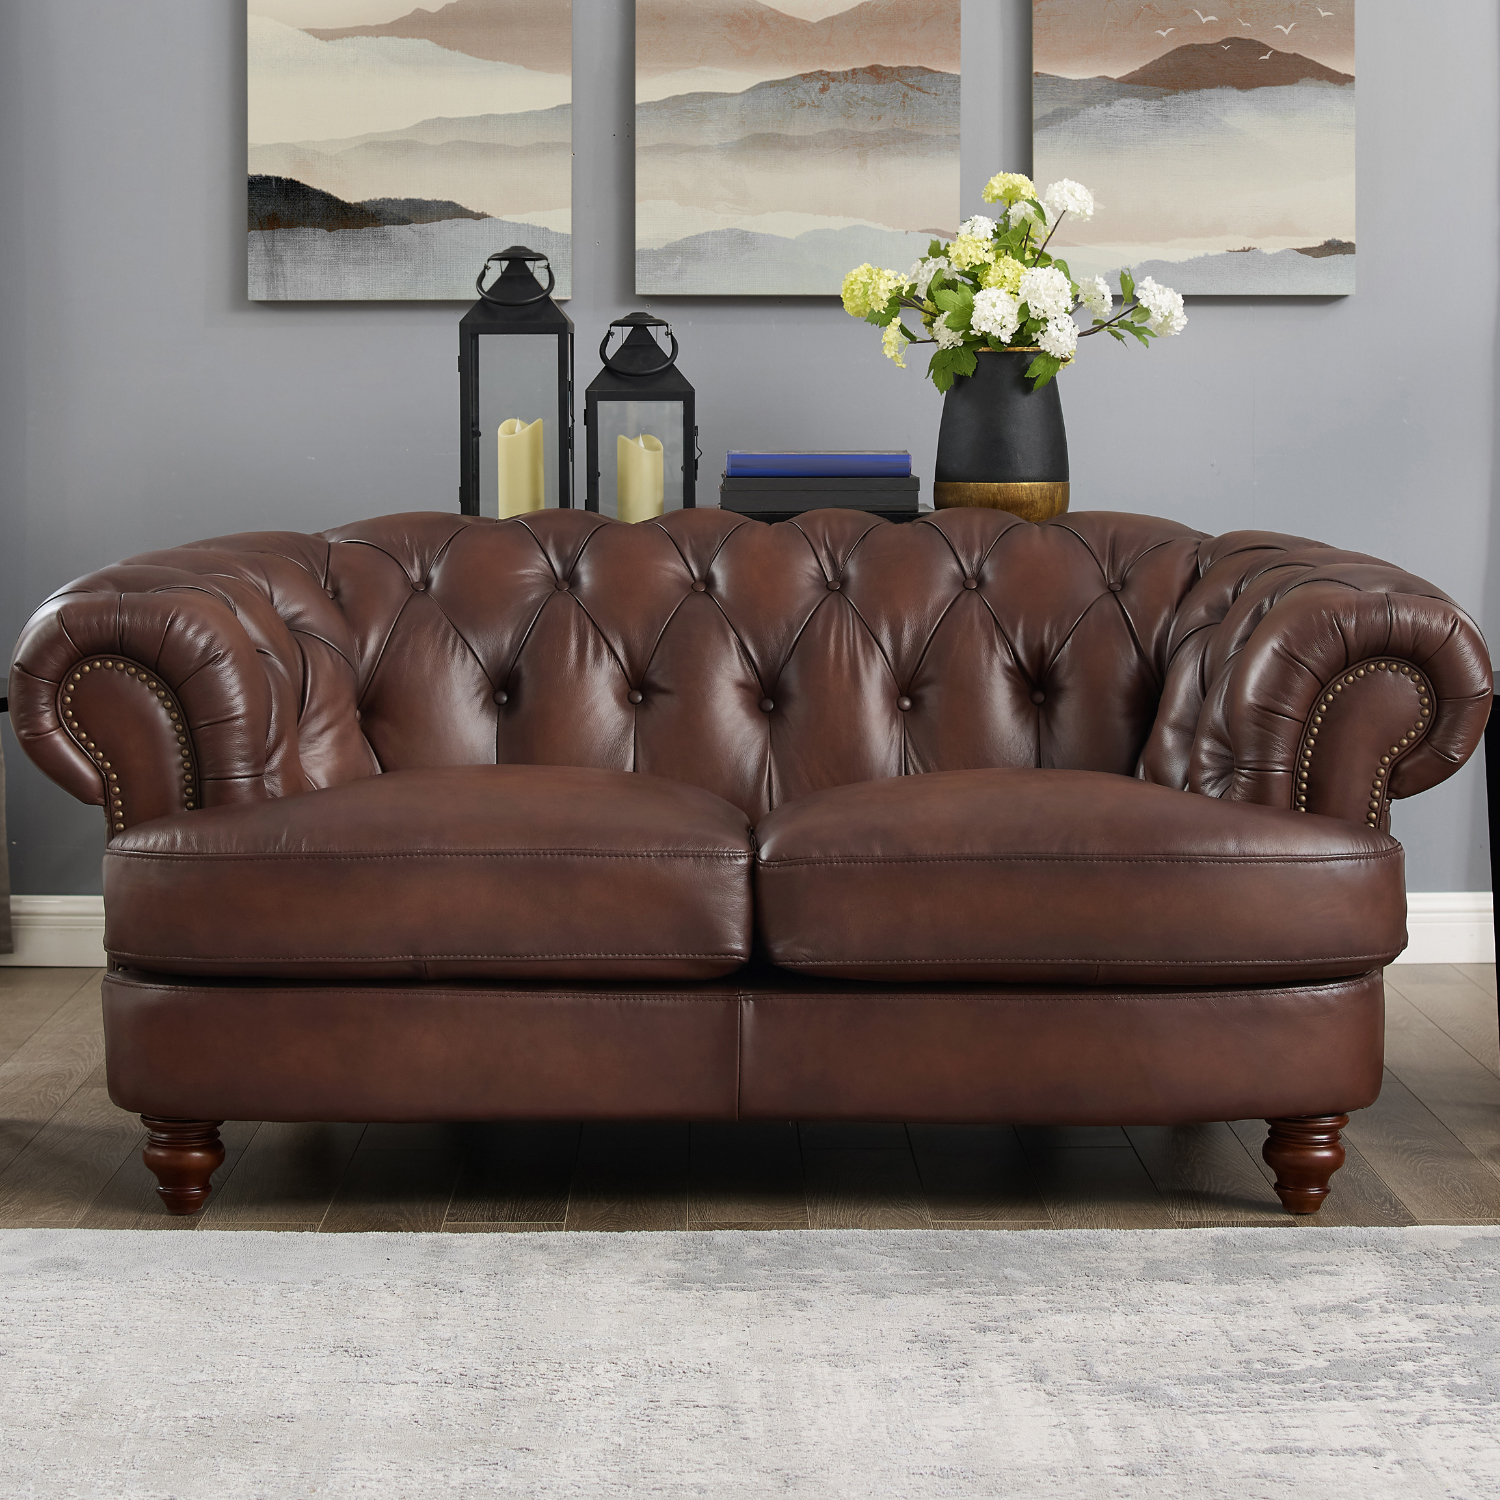 Hydeline Melton Lv Melton Leather Loveseat In Diamond Tufted Dark Brown W Nailheads